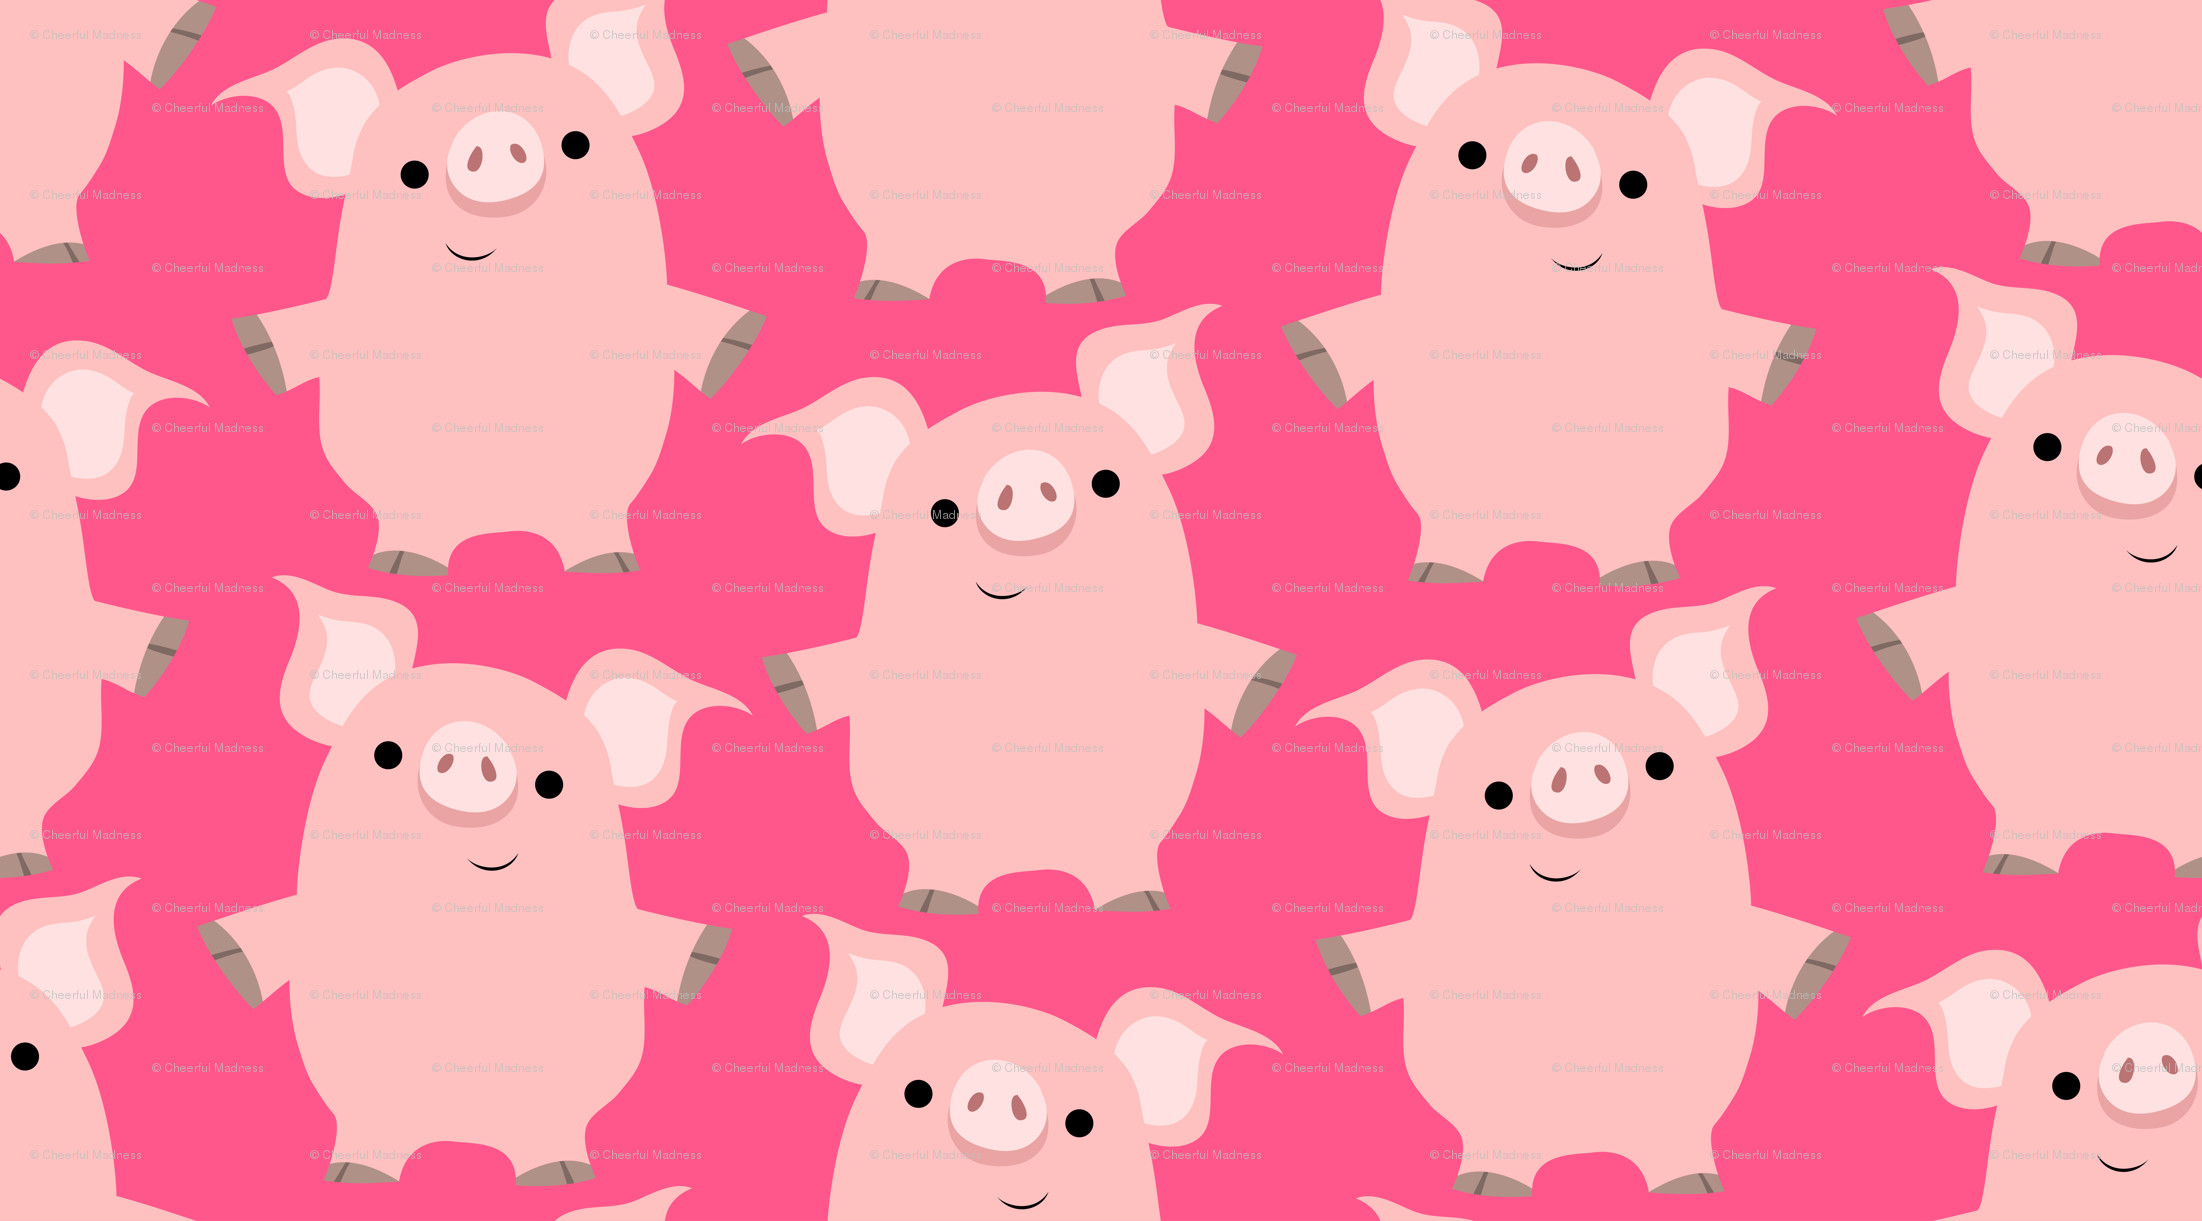 Cute Friendly Cartoon Pigs by Cheerful Madness!! wallpaper –  cheerfulmadness_cartoons – Spoonflower